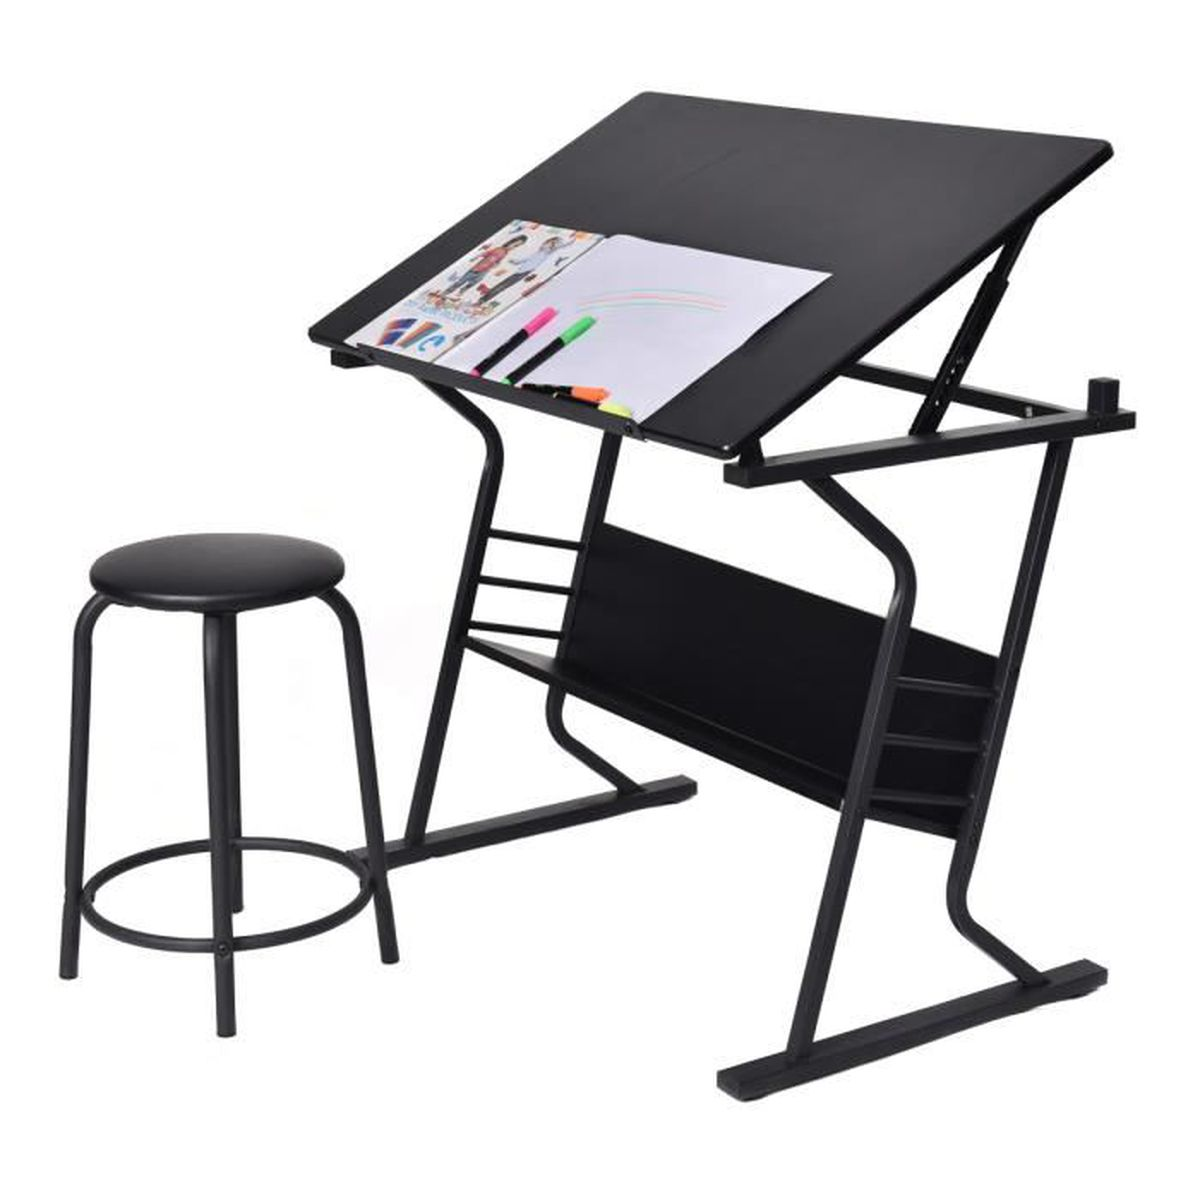 Table dessin inclinable avec tabouret multifonctionnel for Table 6 5 upc